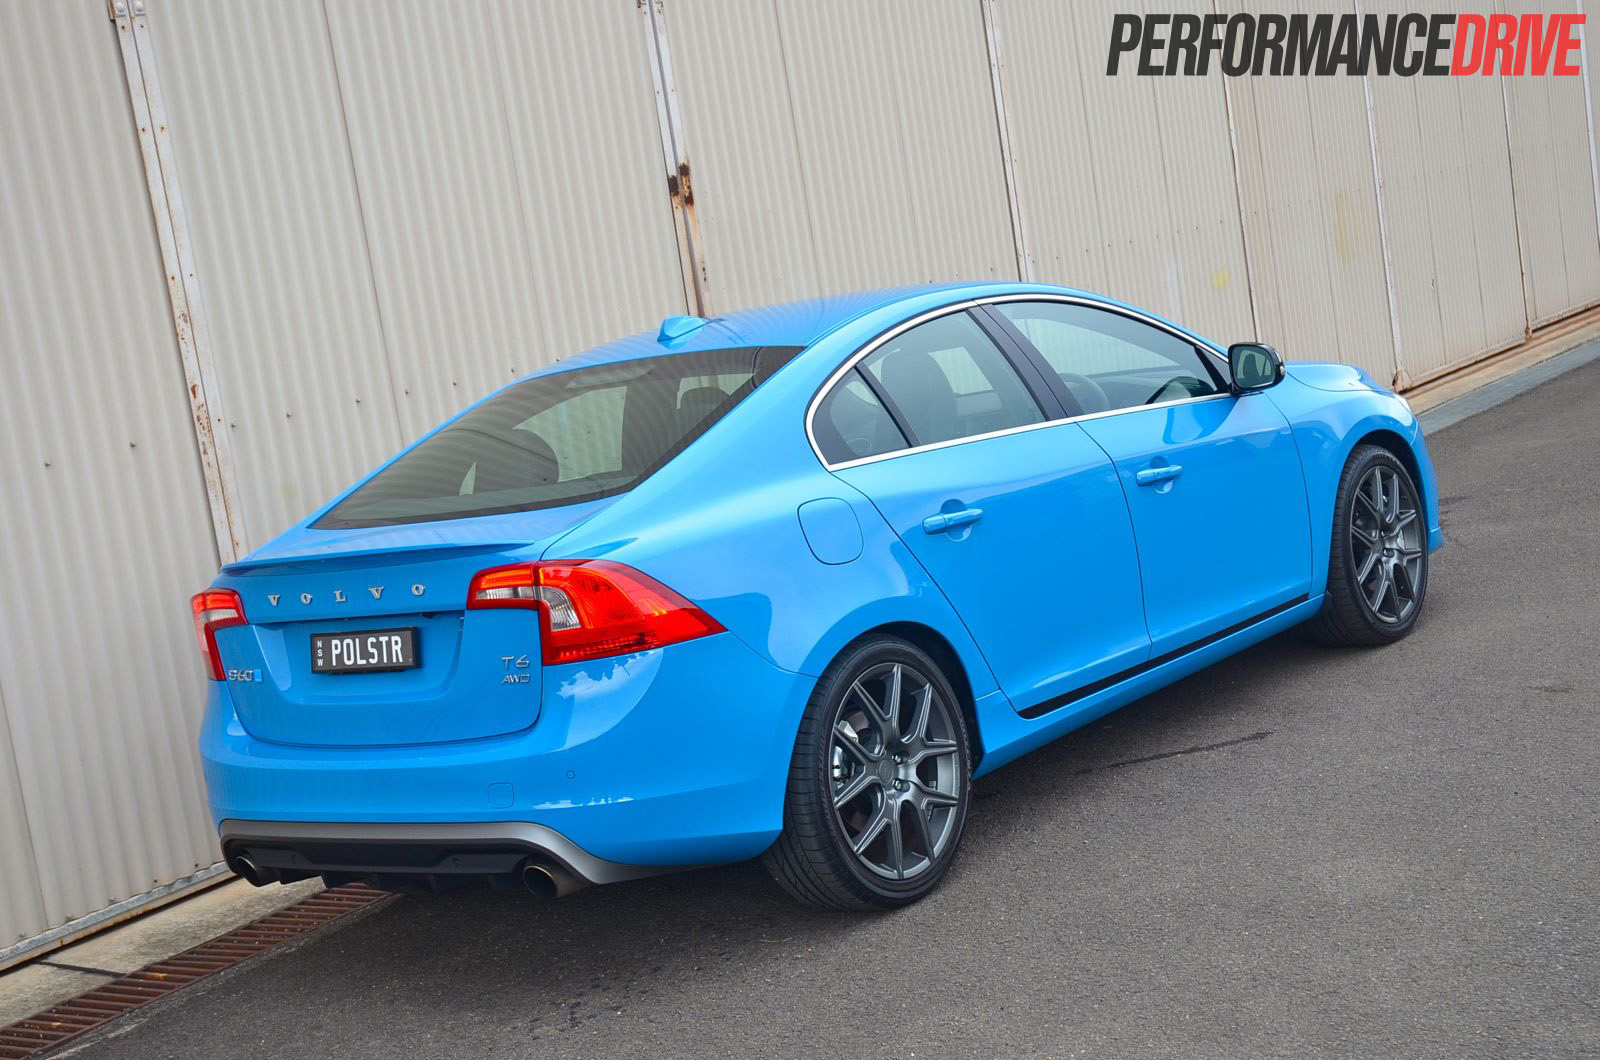 2014 volvo s60 polestar review video performancedrive. Black Bedroom Furniture Sets. Home Design Ideas